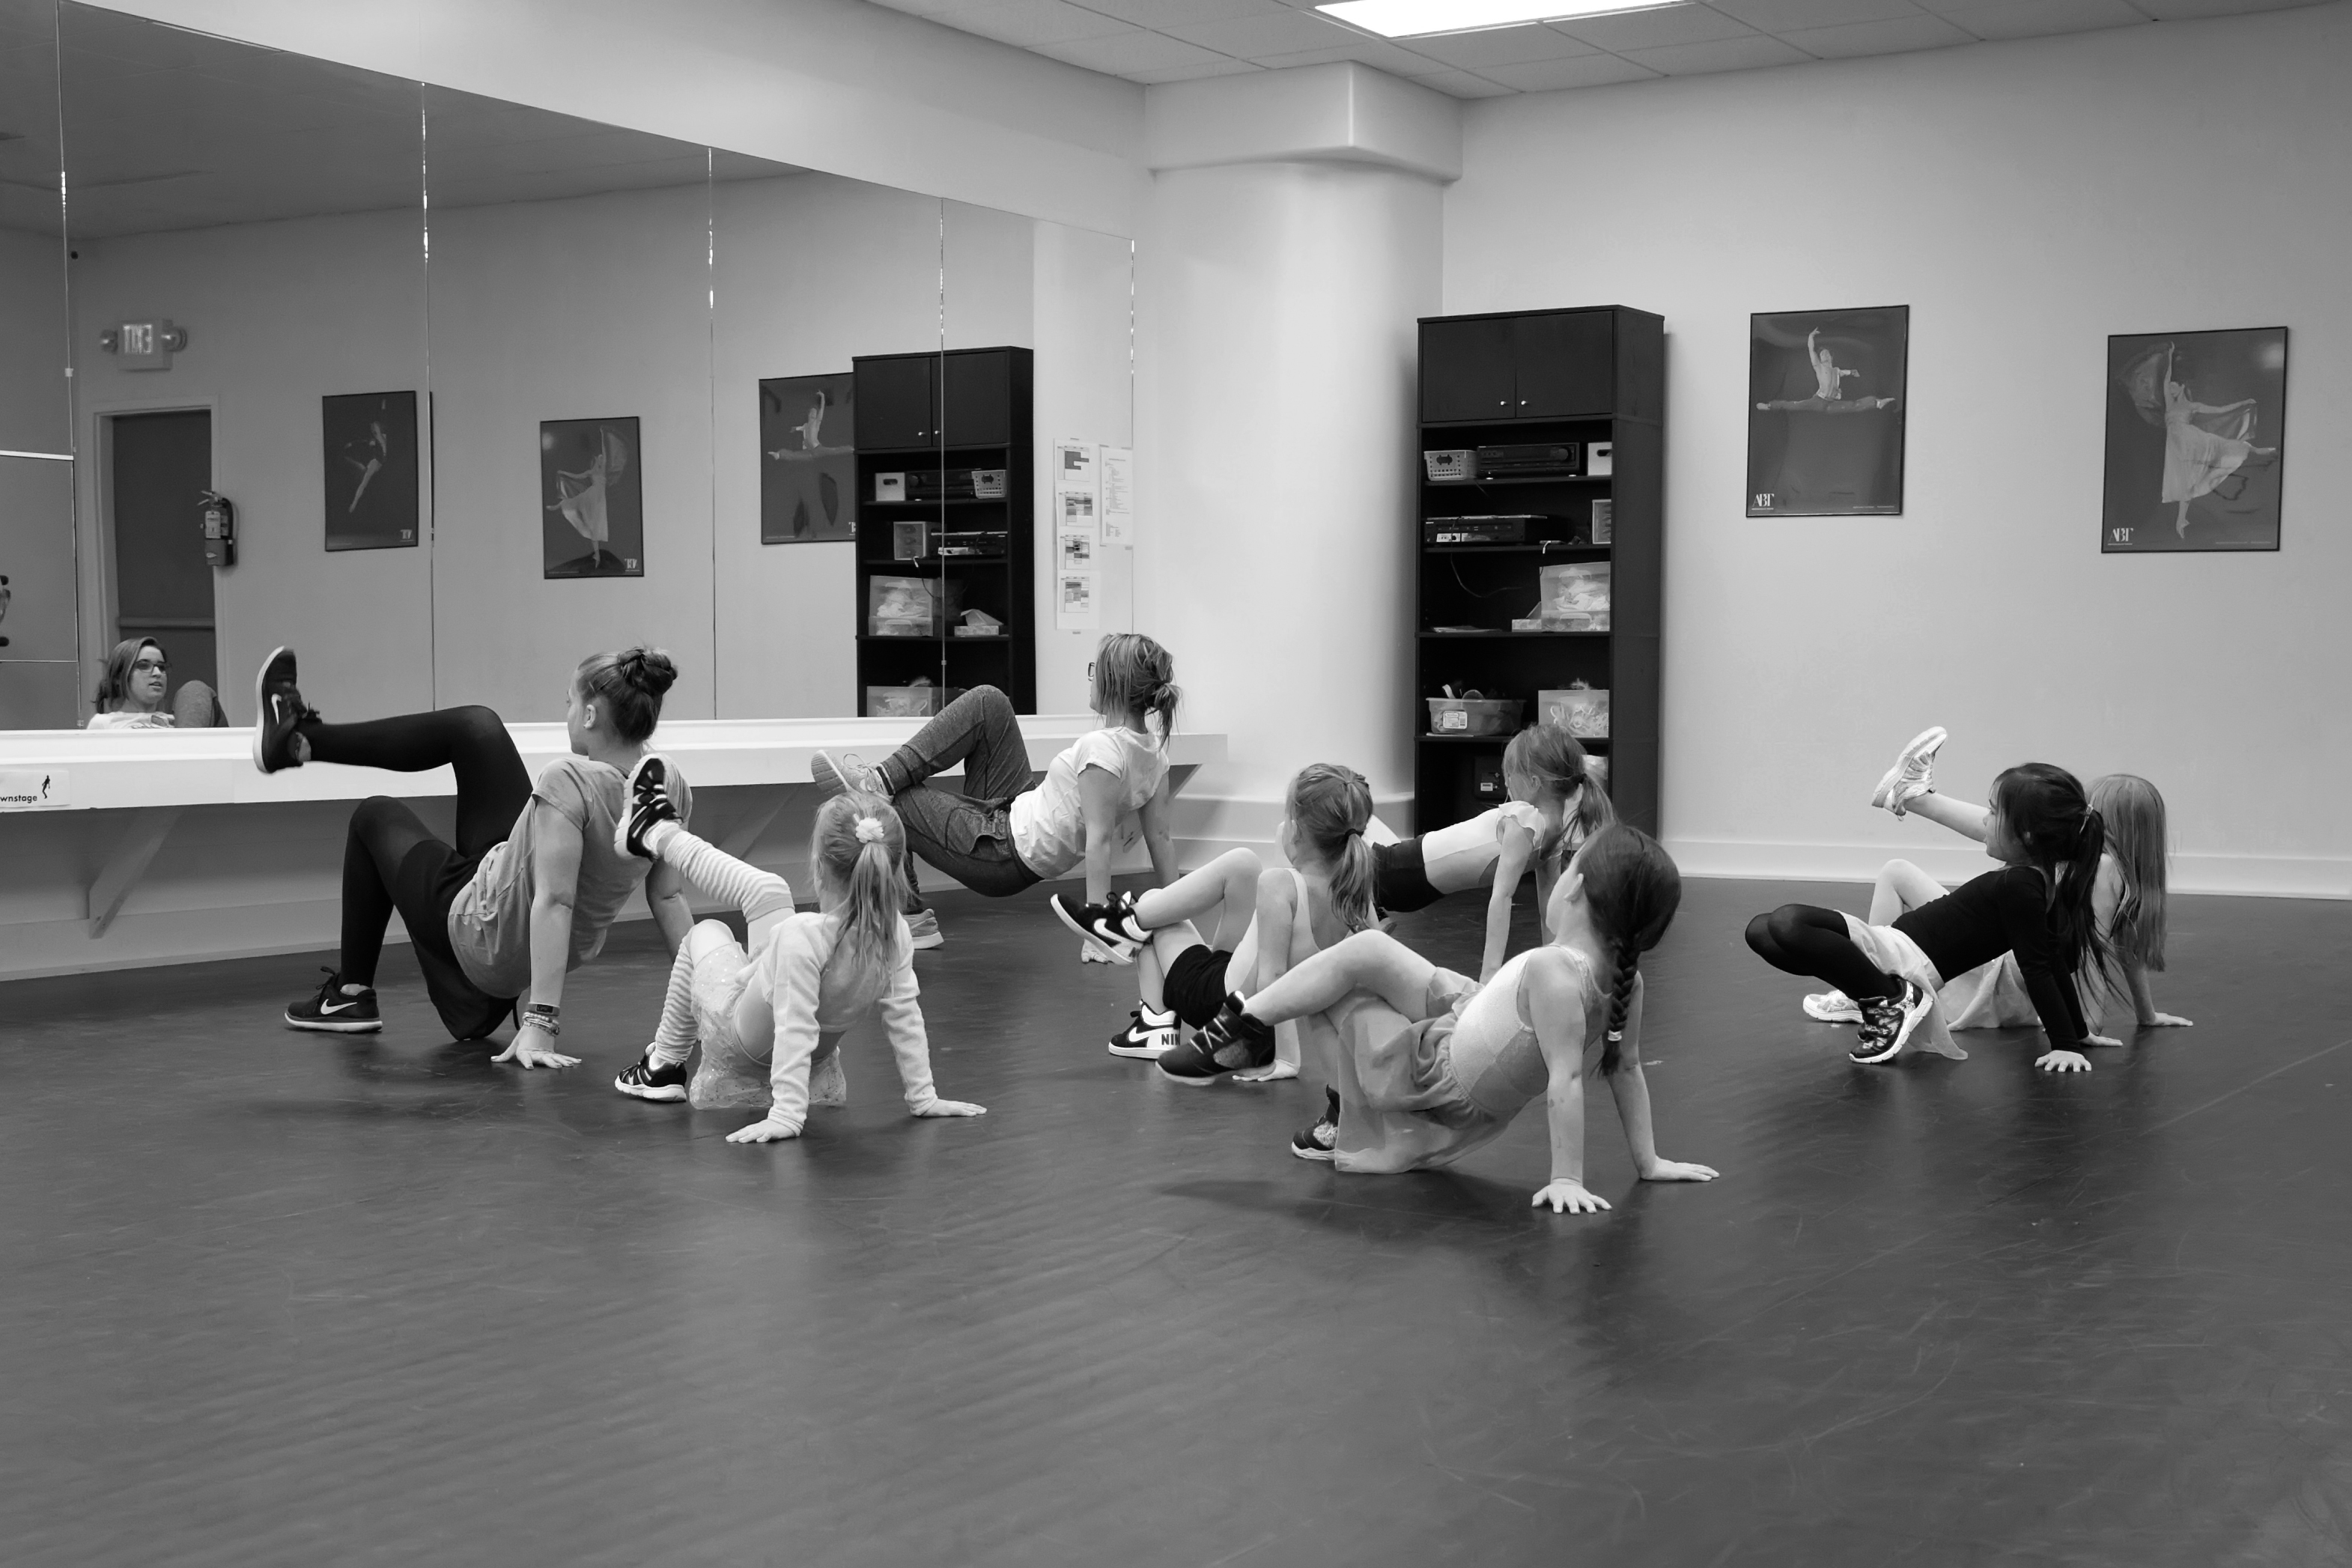 Dancers in RMSA studio